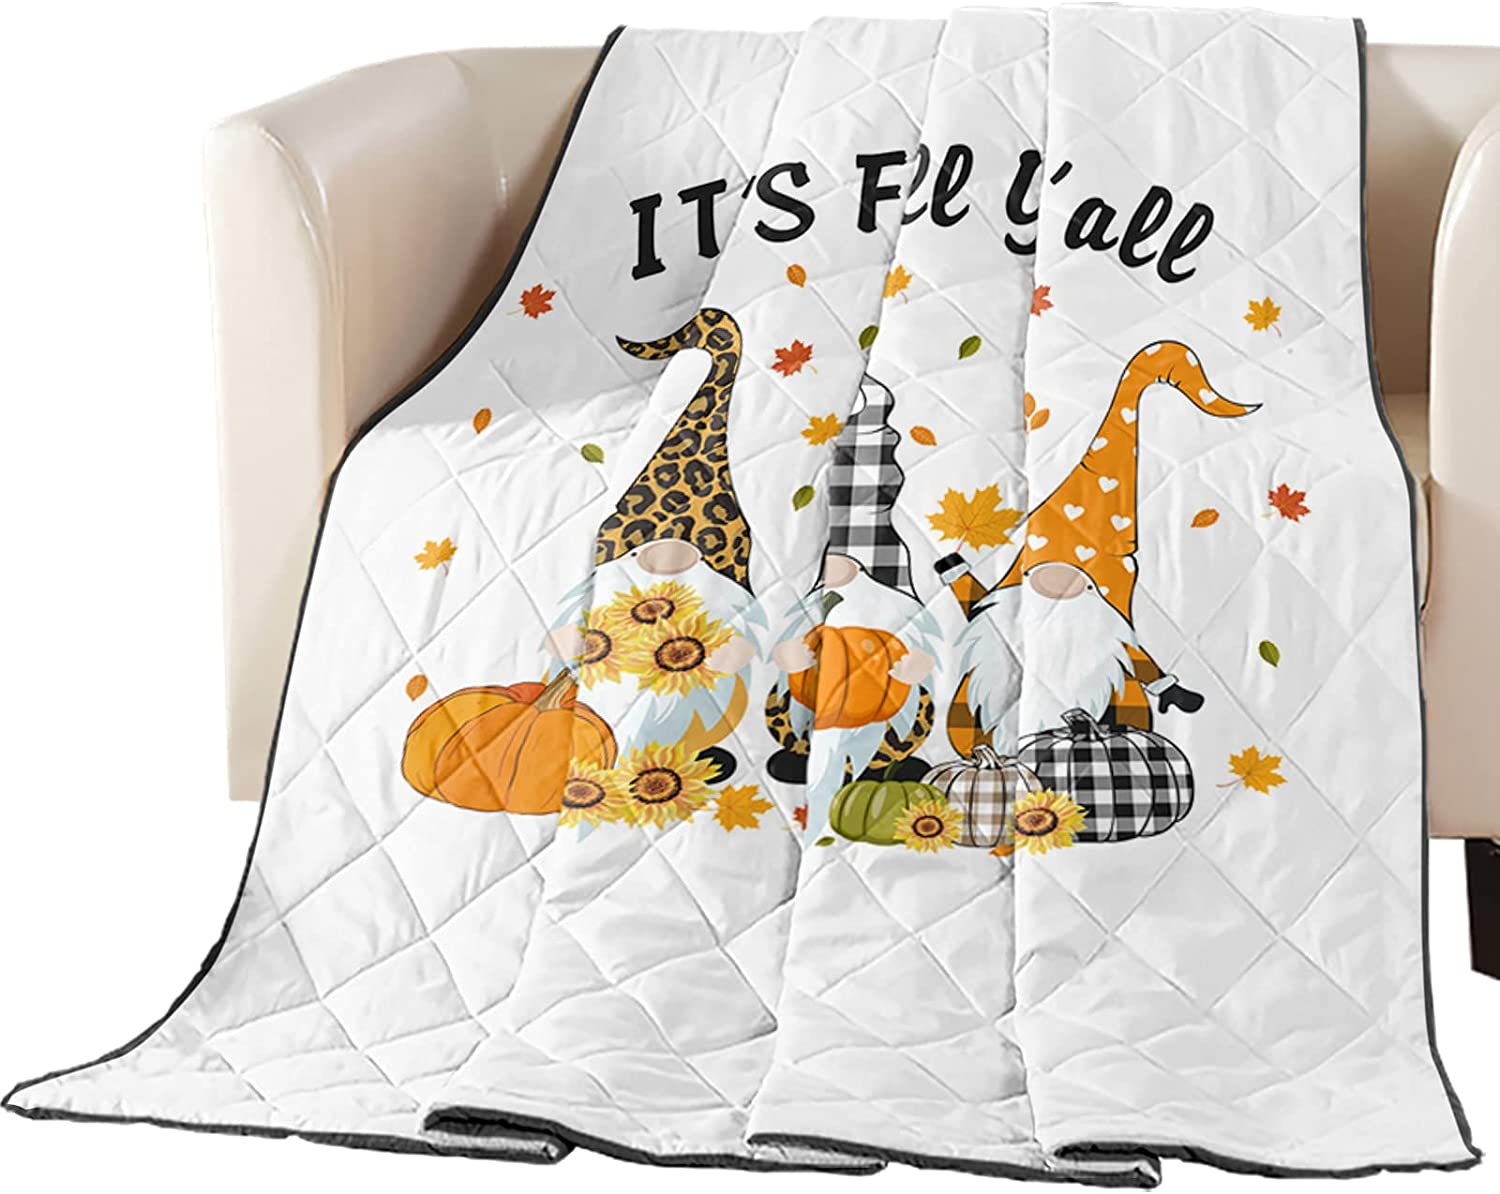 Luck Sky Premium Coverlet Diamond Las Vegas Mall Manufacturer direct delivery Gnome Quilted Stitched 88x88in